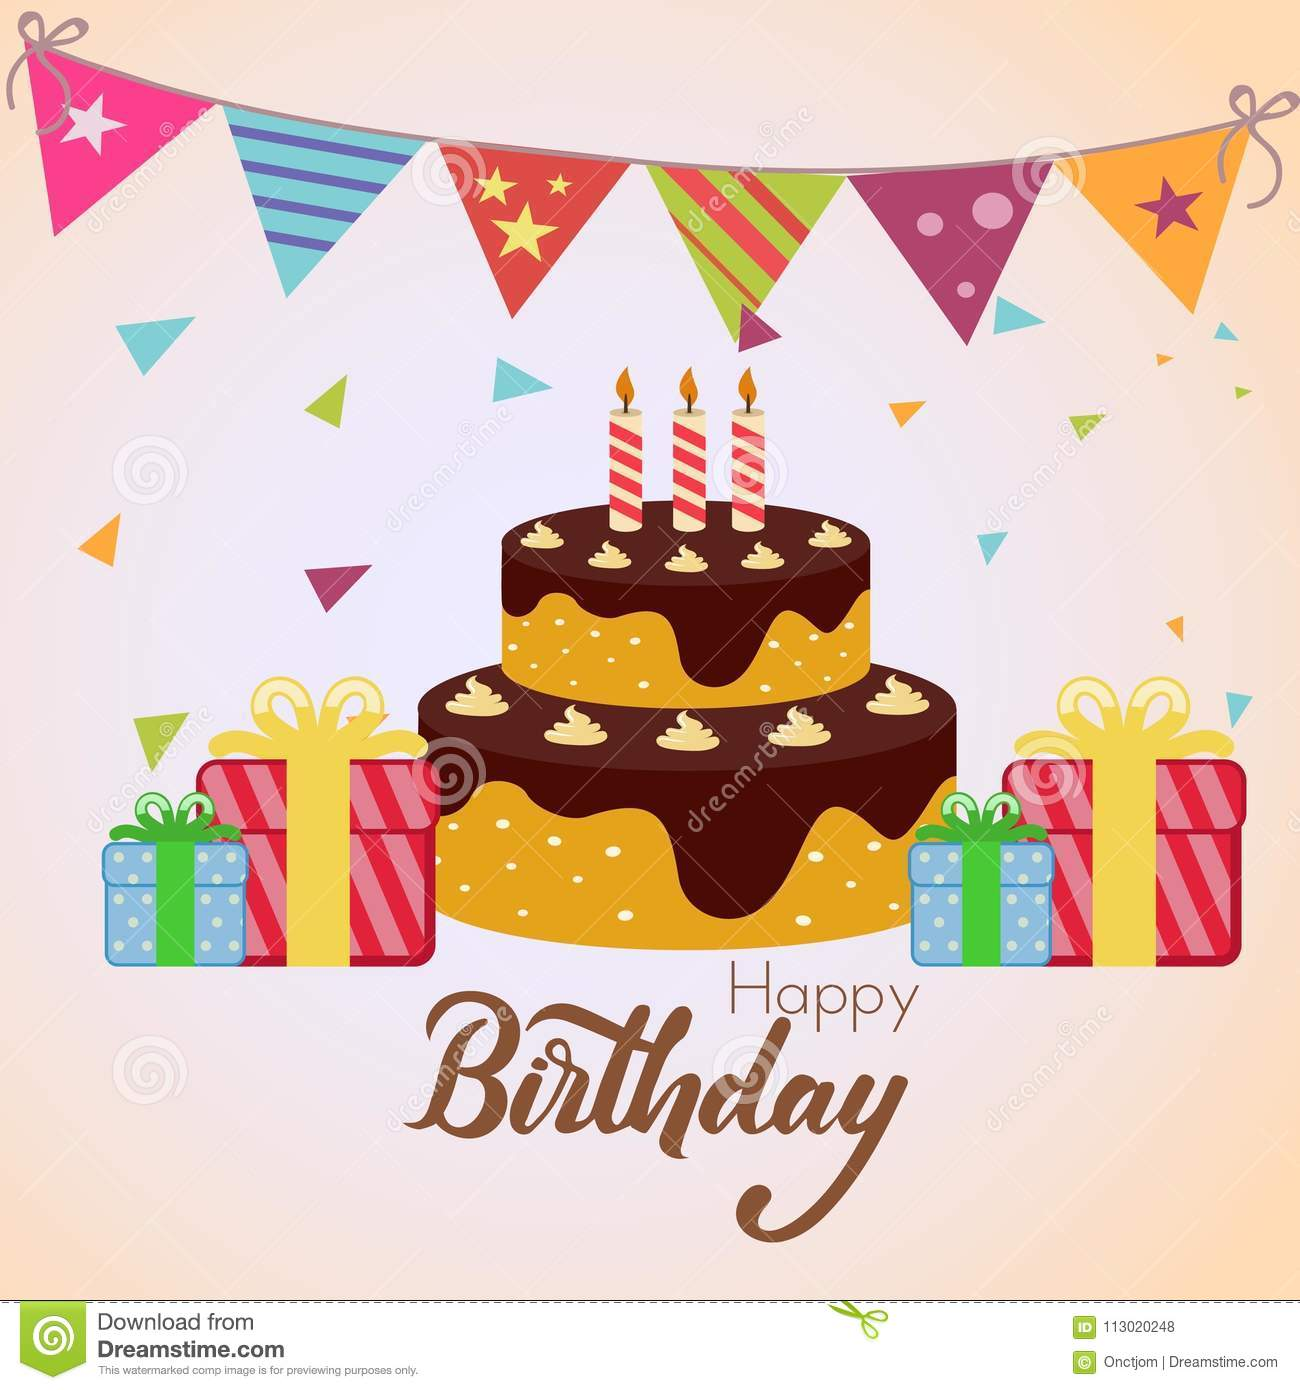 Birthday Cake With Confetti Stock Vector Illustration Of Confetti